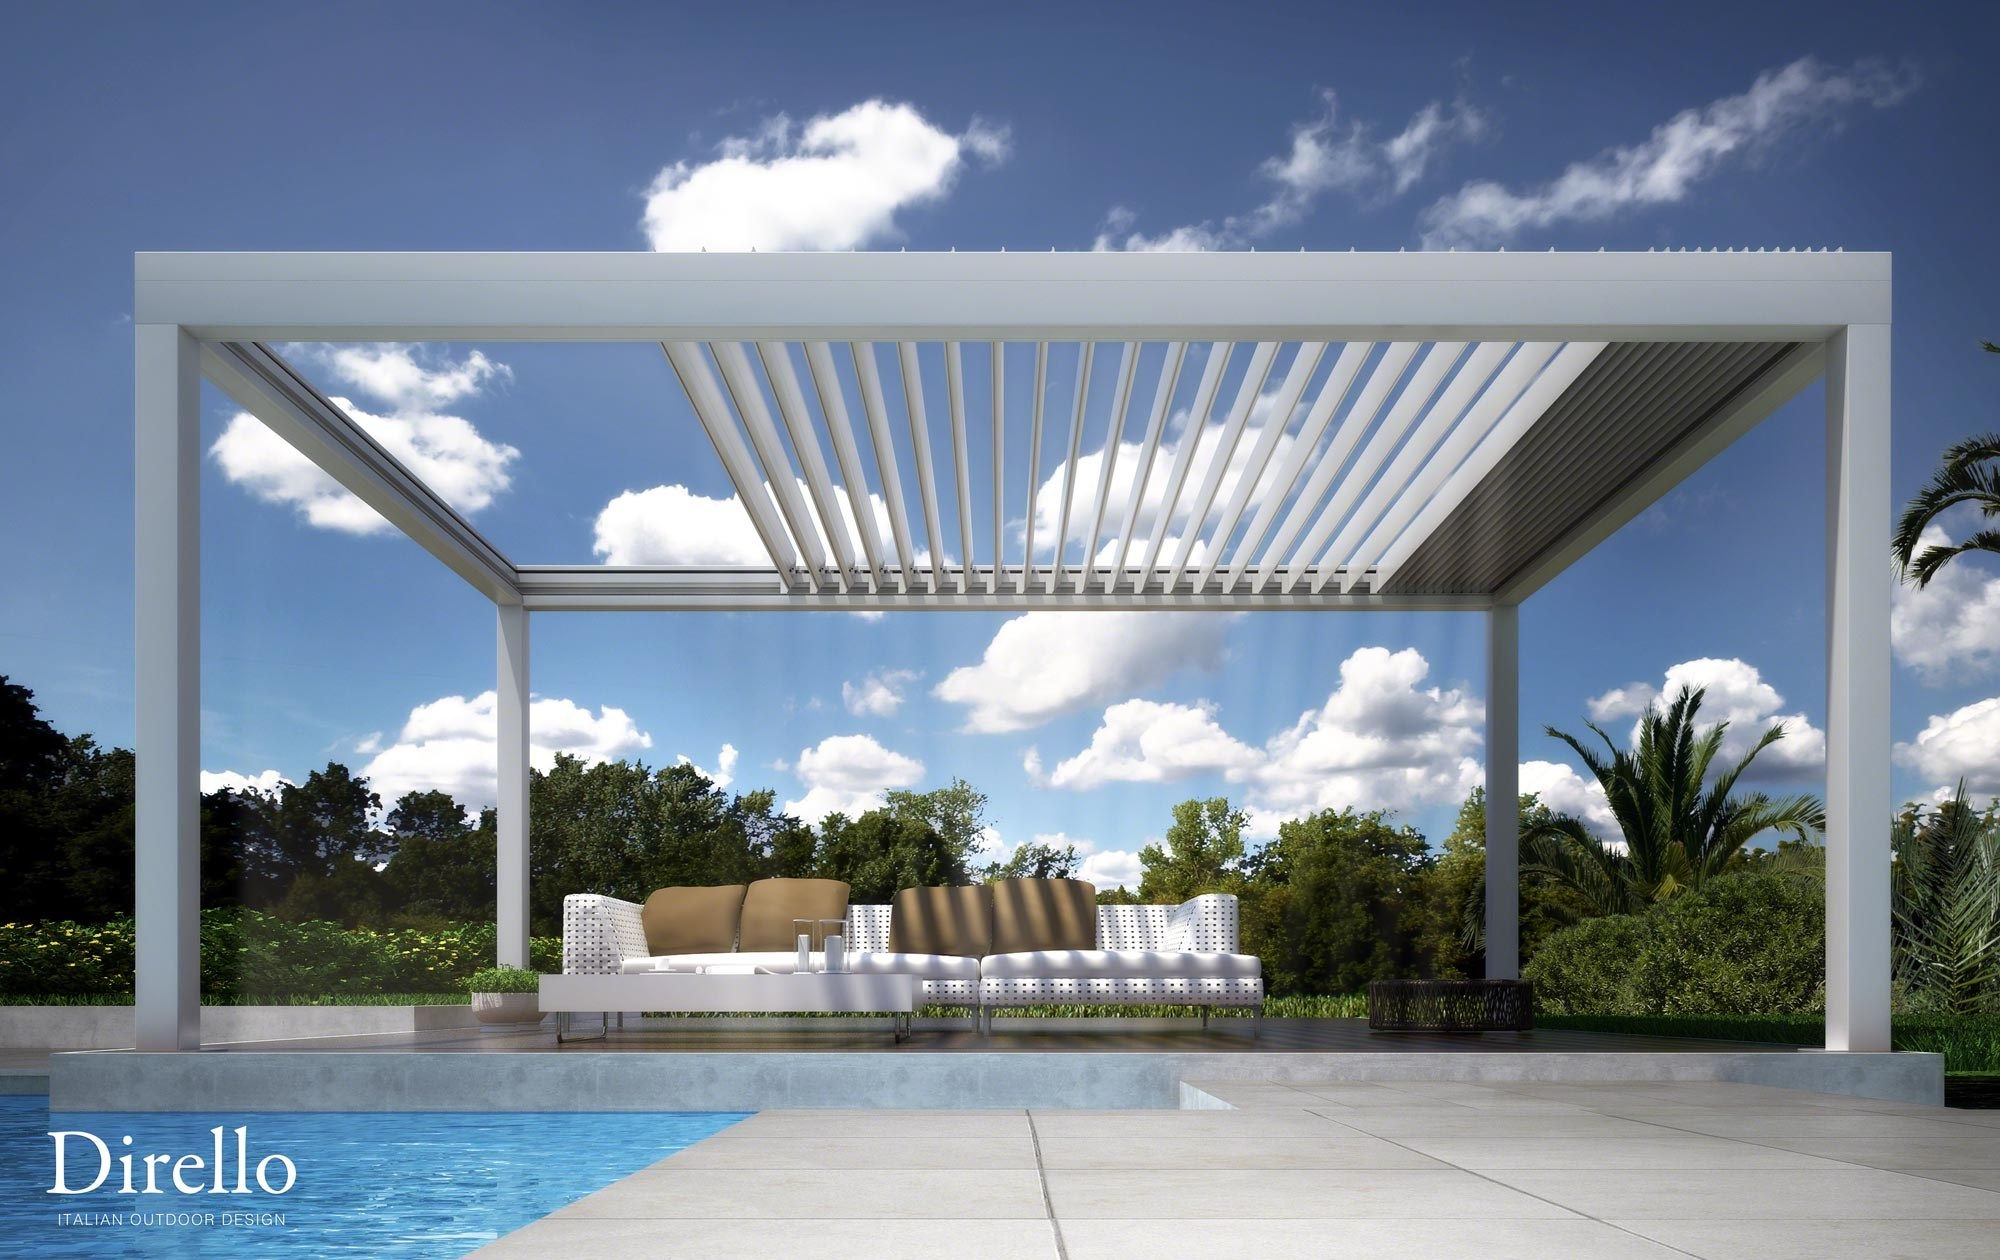 Freestanding Motorized Pergola With Sliding Cover Orchestra By Tenda Service Pergola Outdoor Rooms Wall Mounted Pergola